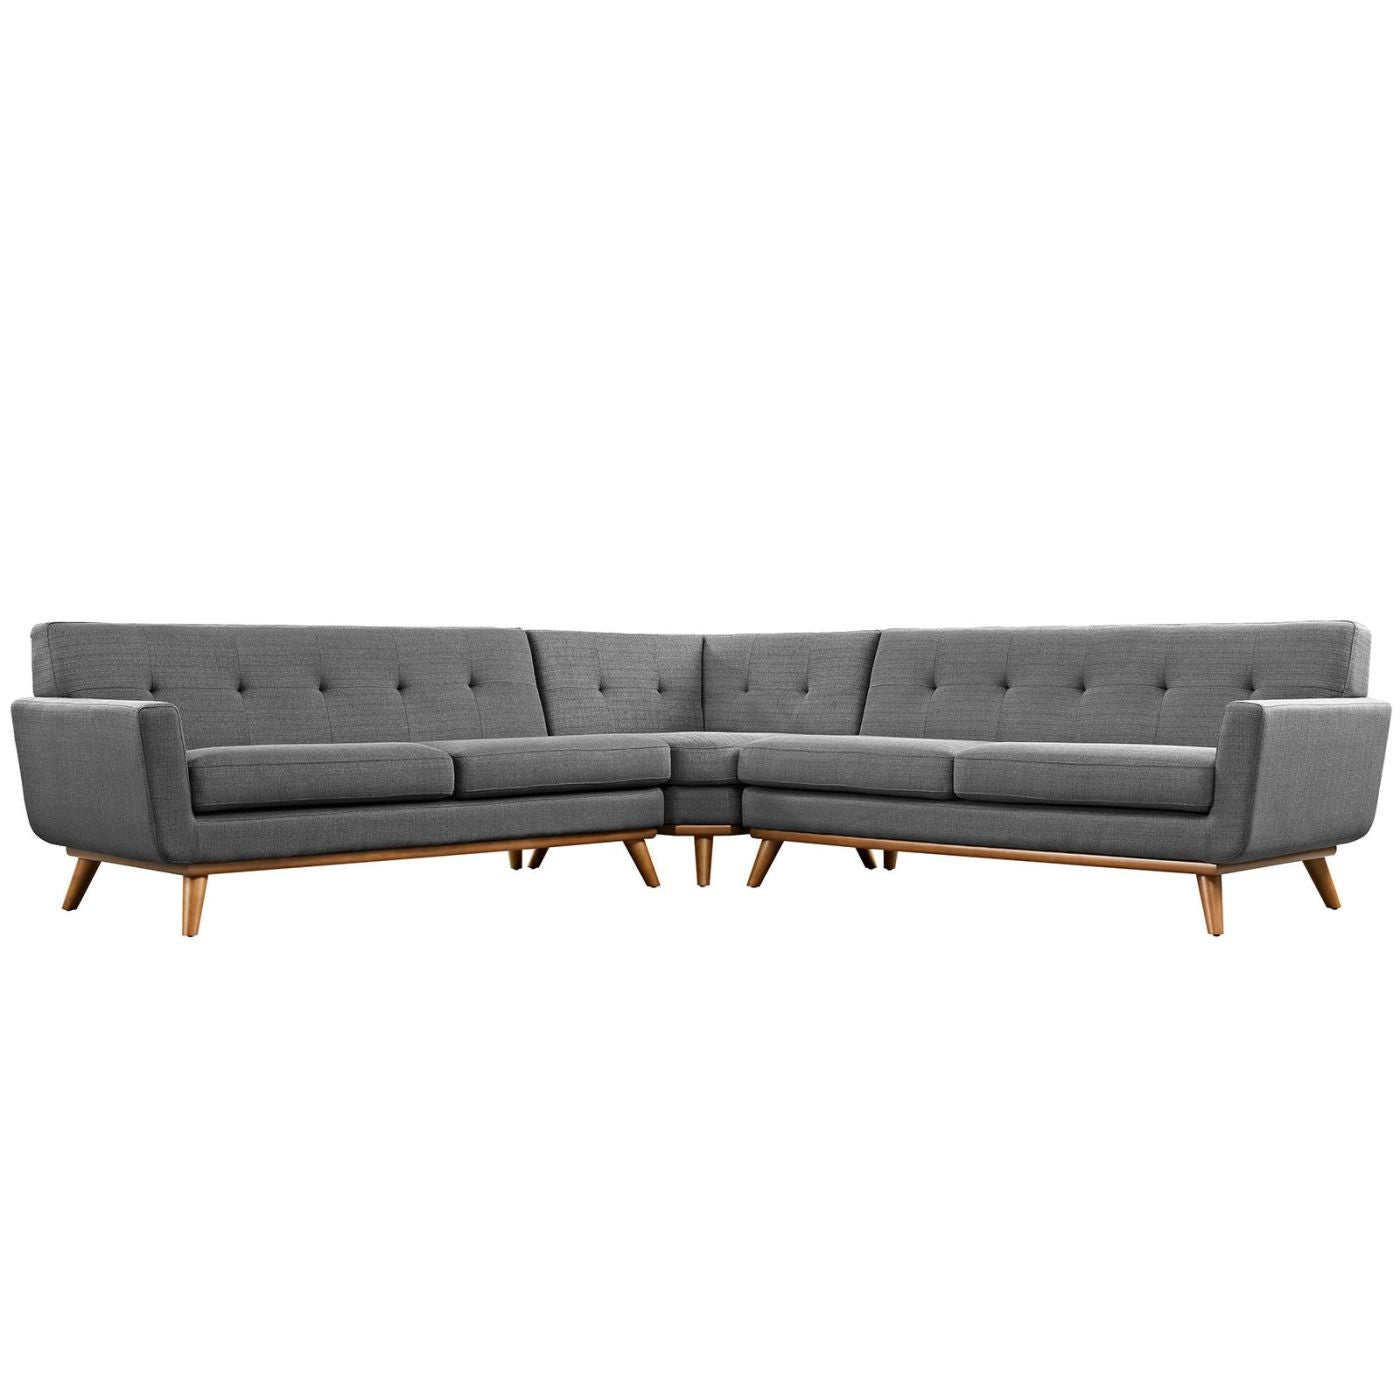 Modway Sectional Sofas on sale. EEI-2108-DOR-SET Engage Mid Century ...